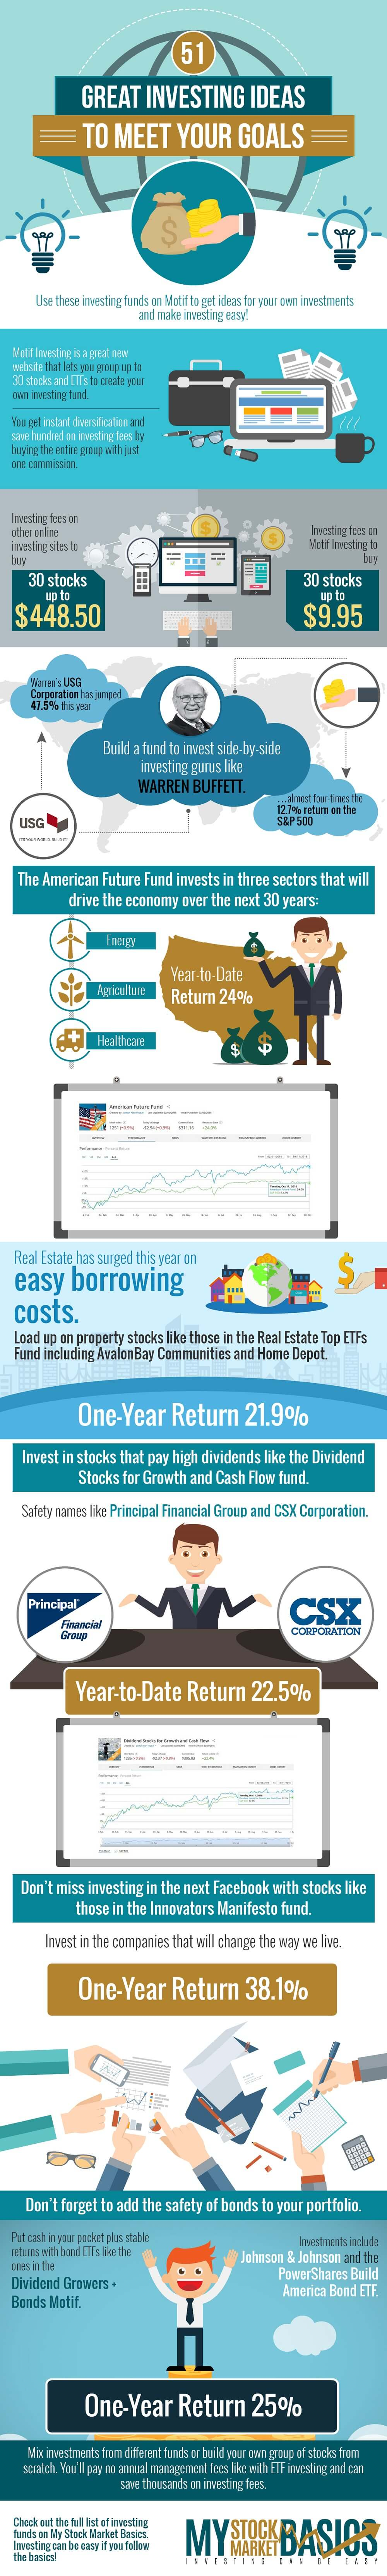 Putting together a Great Investment Strategy for 10% Returns